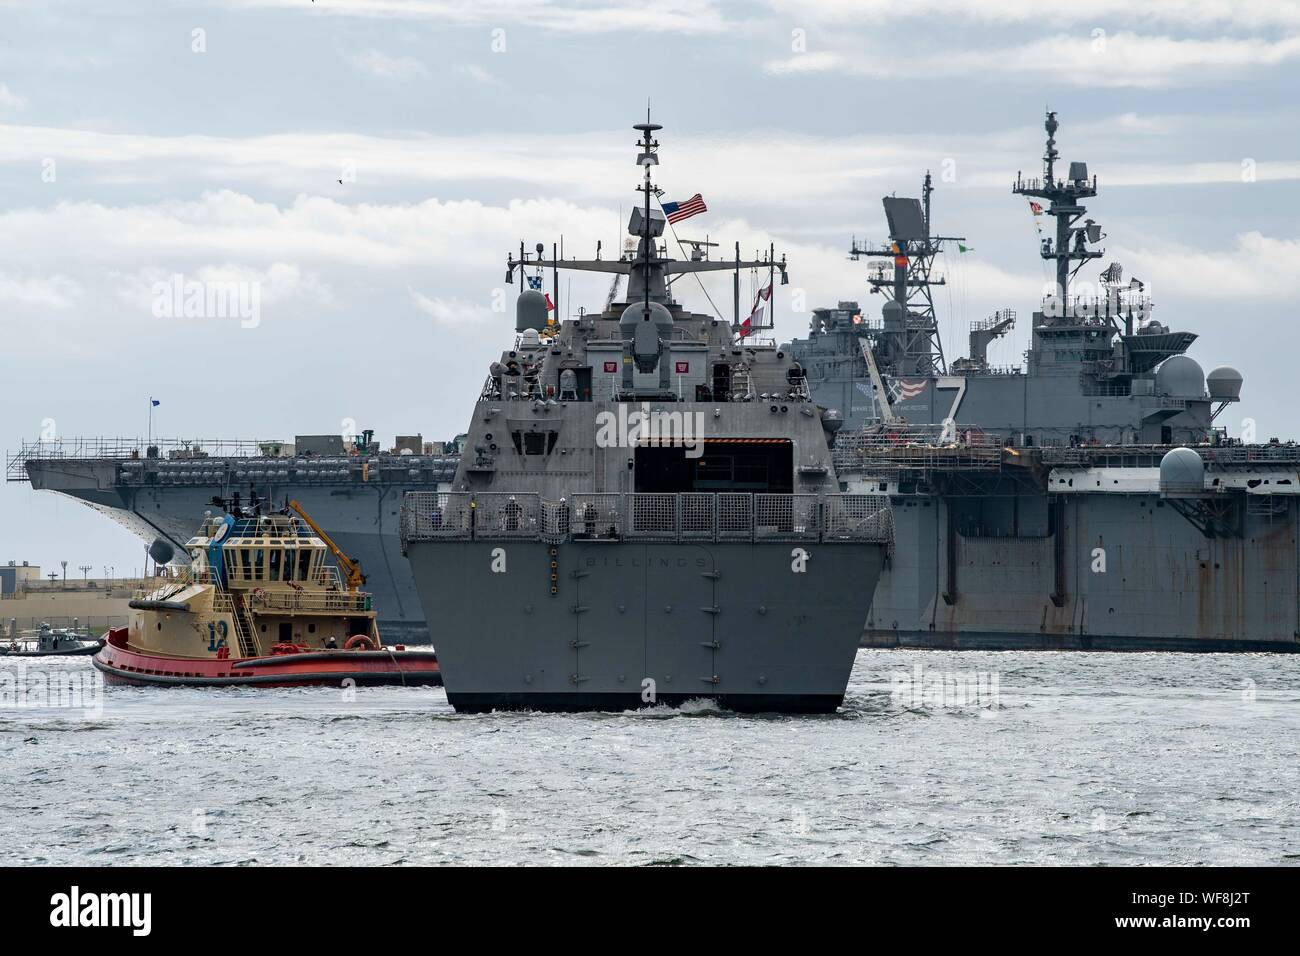 190830-N-QI061-2166  JACKSONVILLE, Fla. (Aug. 30, 2019) The Freedom-class variant littoral combat ship USS Billings (LCS 15) gets underway from Naval Station Mayport as Commander, U.S. 4th Fleet orders all U.S. Navy ships homeported in the area to sortie ahead of Hurricane Dorian, which is forecasted to bring high winds and heavy rain to the East Coast. Ships are being directed to areas in the Atlantic where they are best postured for storm avoidance. (U.S. Navy photo by Mass Communication Specialist 3rd Class Nathan T. Beard/Released) Stock Photo